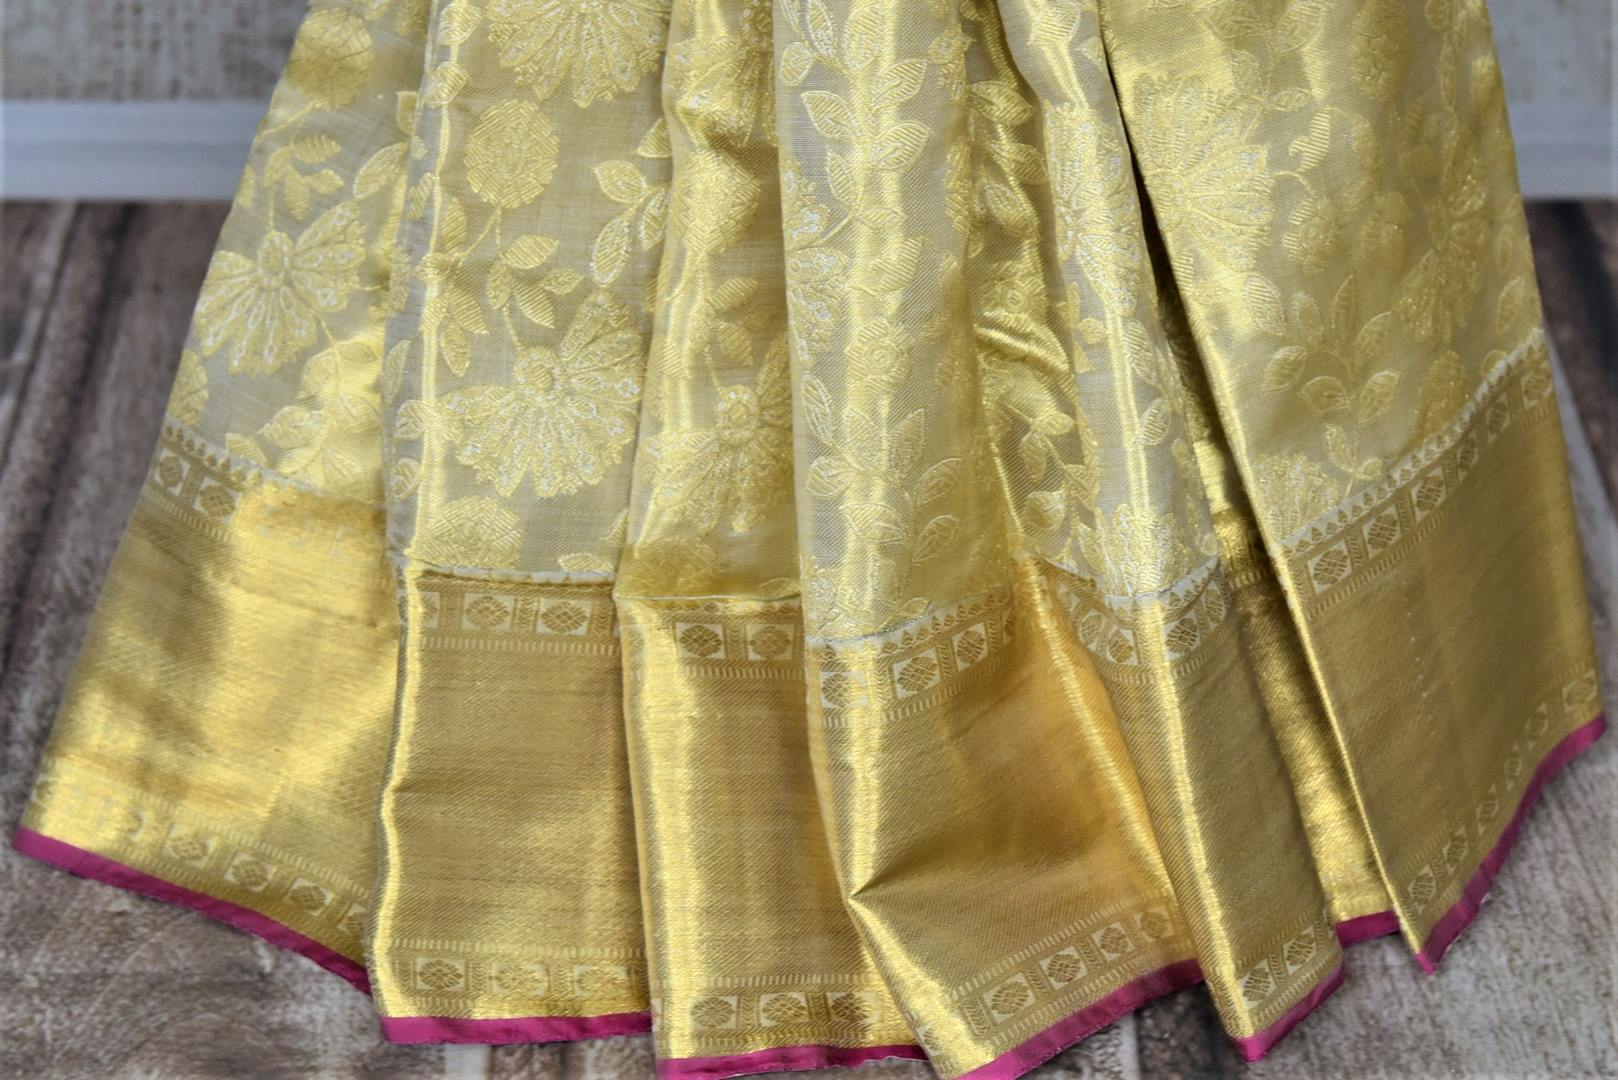 Buy gorgeous golden zari work Kanjivaram saree online in USA with zari border. Look rich and traditional at weddings and festive occasions with exquisite Kanchipuram silk sarees from Pure Elegance Indian fashion store in USA.-pleats